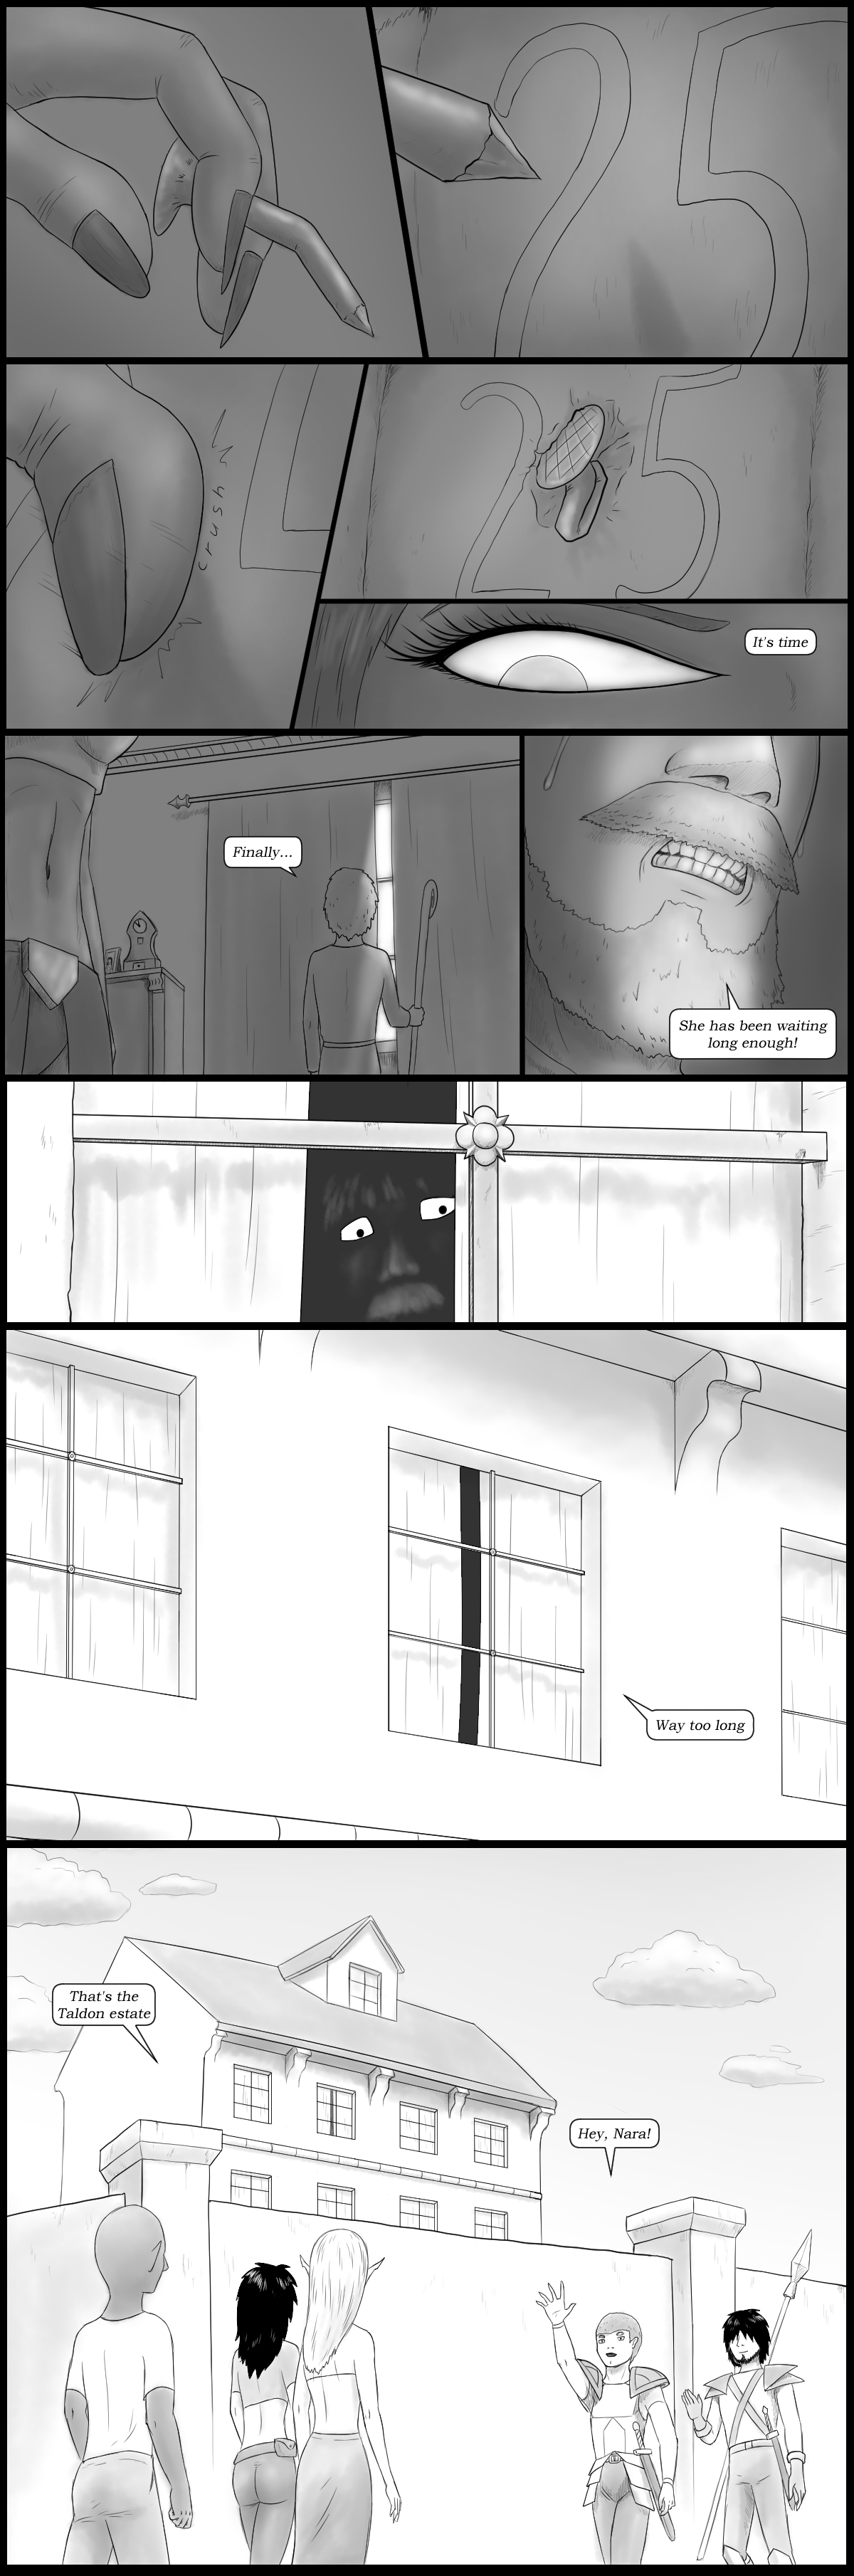 Page 68 - The meeting day